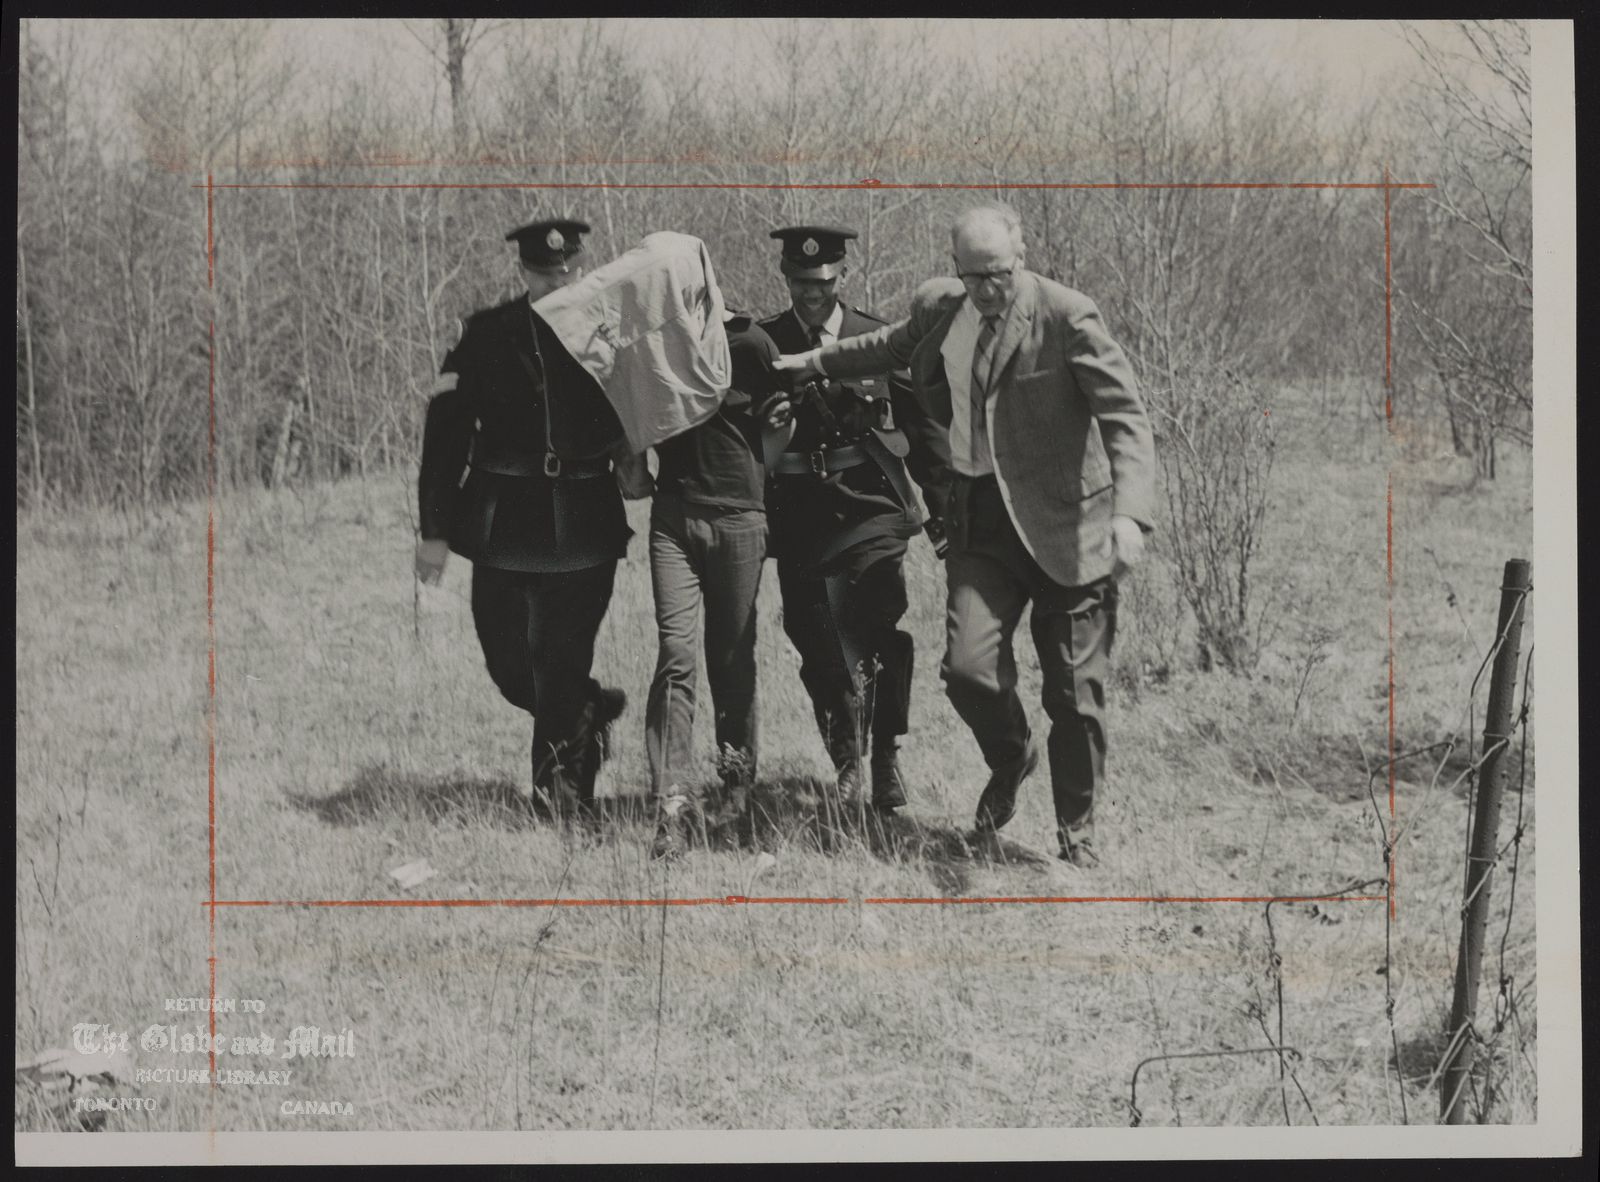 Philip DUMAS Scarboro. Charged with non Capital murder THE END OF A POLICE MANHUNT Out of a Scarborough bush, police bring the youth they arrested yesterday after a 23-year-old woman teacher was found stabed and strangled. Constable Larry McLarty (middle) made the arrest, Flanking him are Sgt. Kenneth Haddon (left) and Det.Sgt. Harold Roberts, Philip Dumas, 17, has been charged with capital murder.